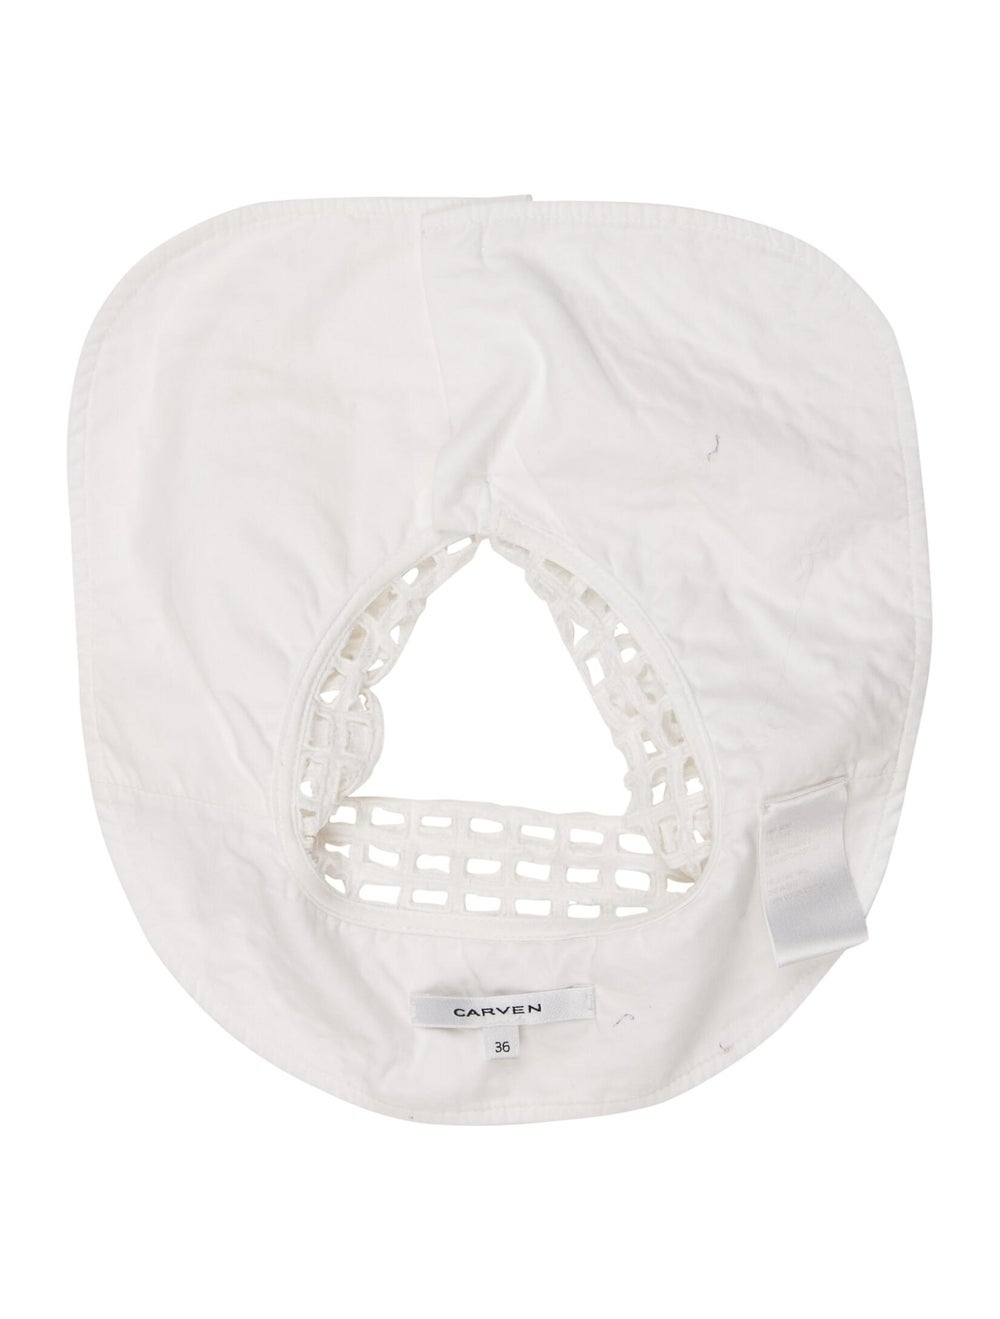 Carven Lace Button Collar White - image 2